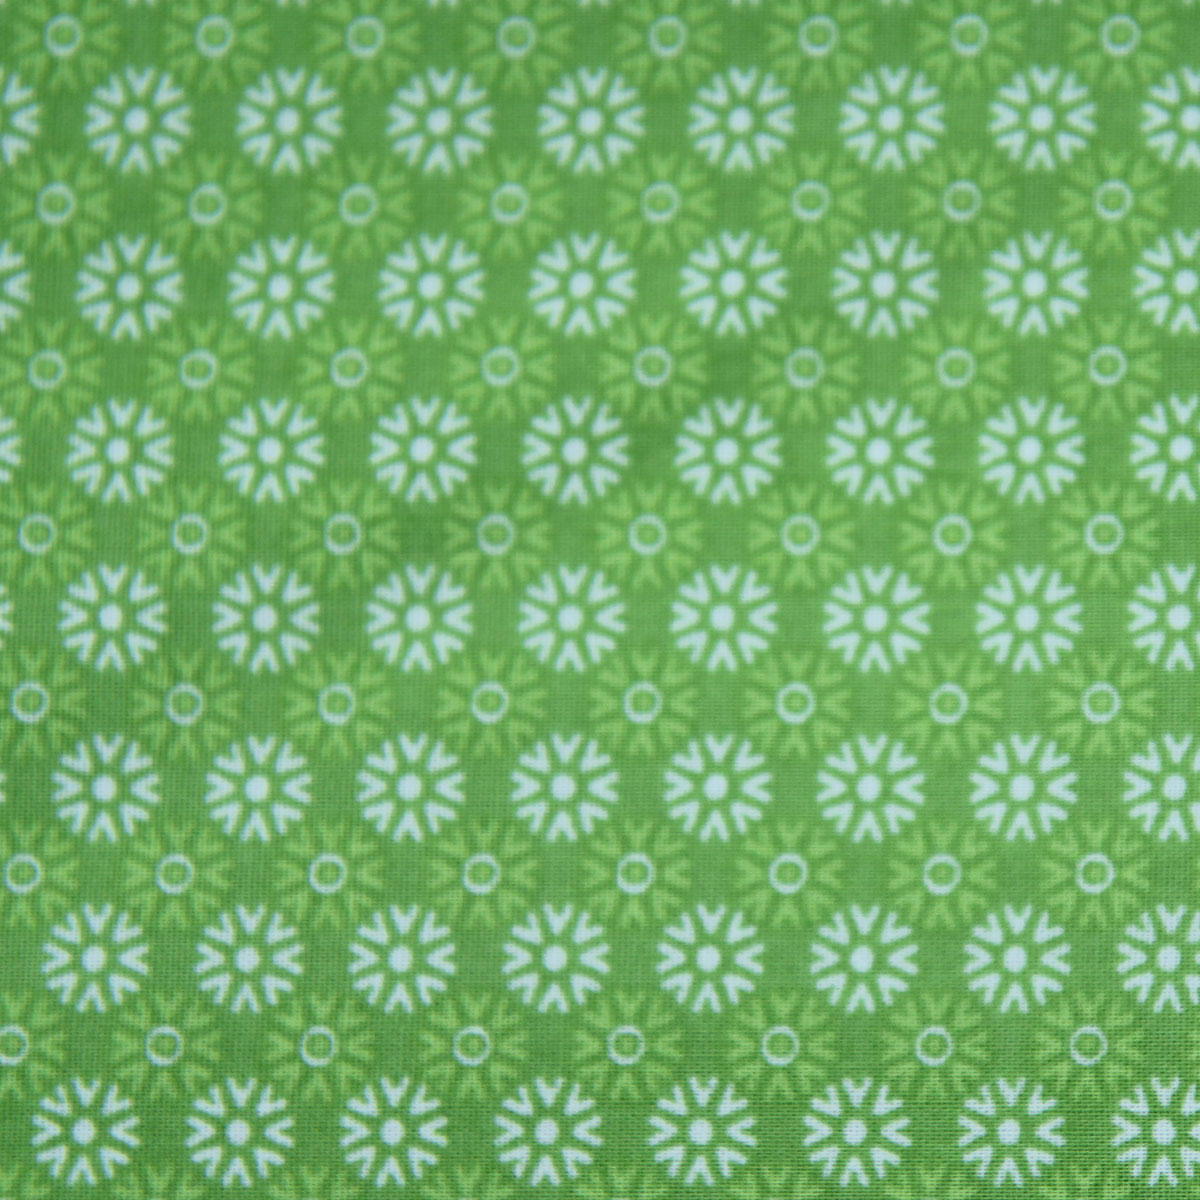 Green patterned fabric rectangle for Patterned material fabric